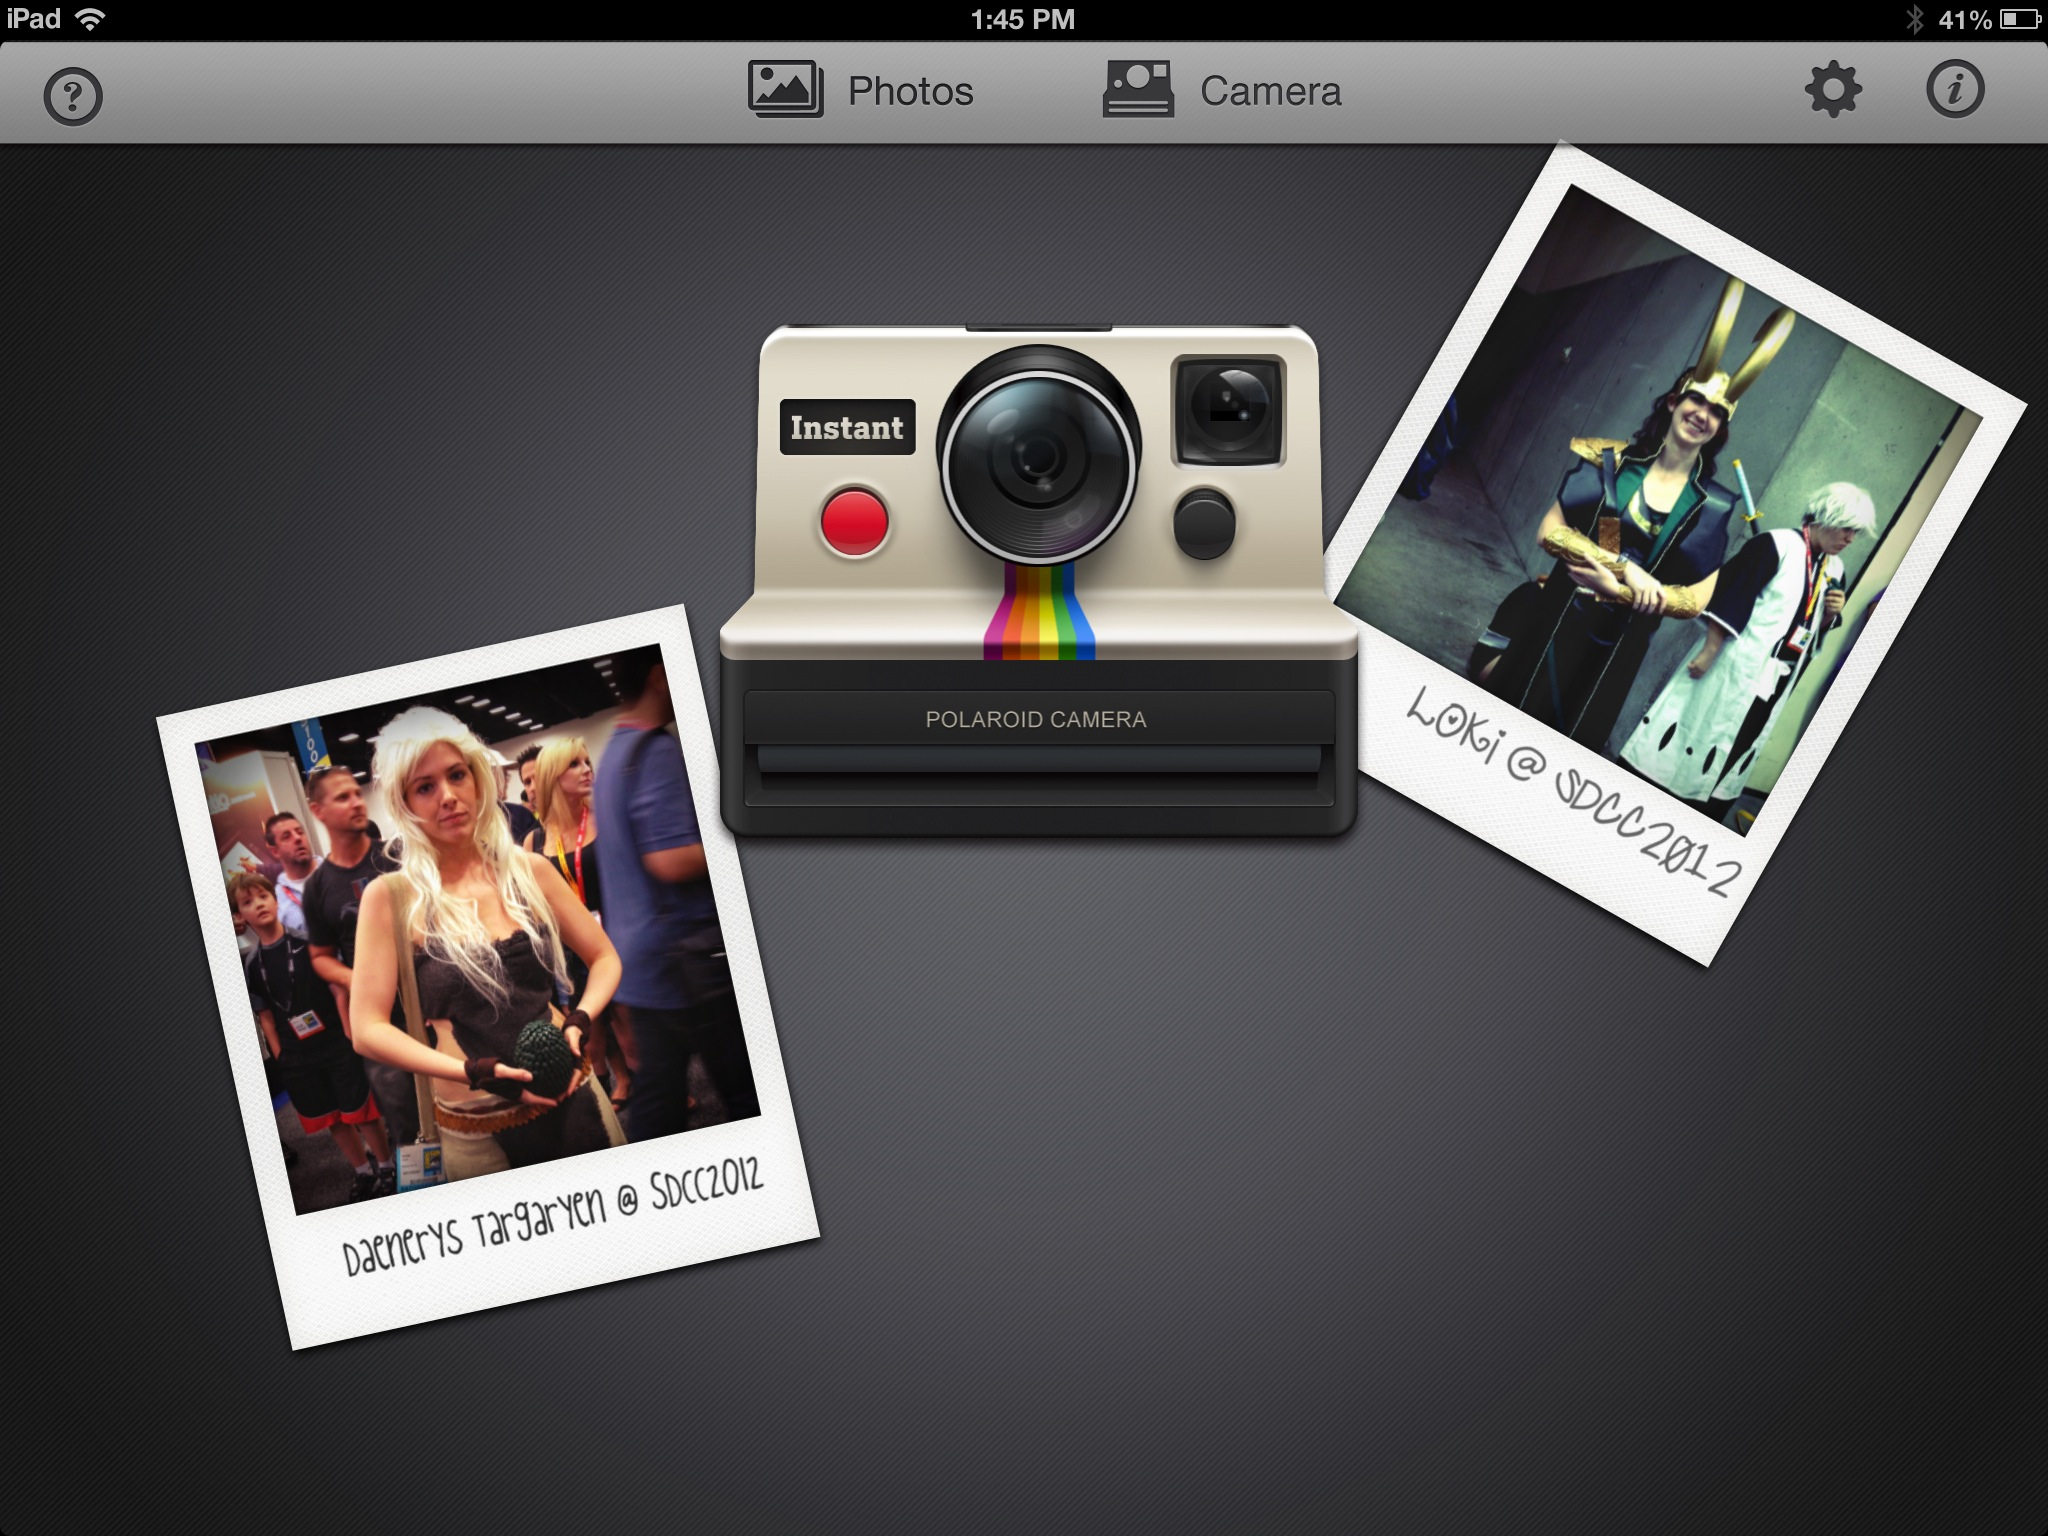 See The Magic Of Polaroid Photos With Instant On Your iPad